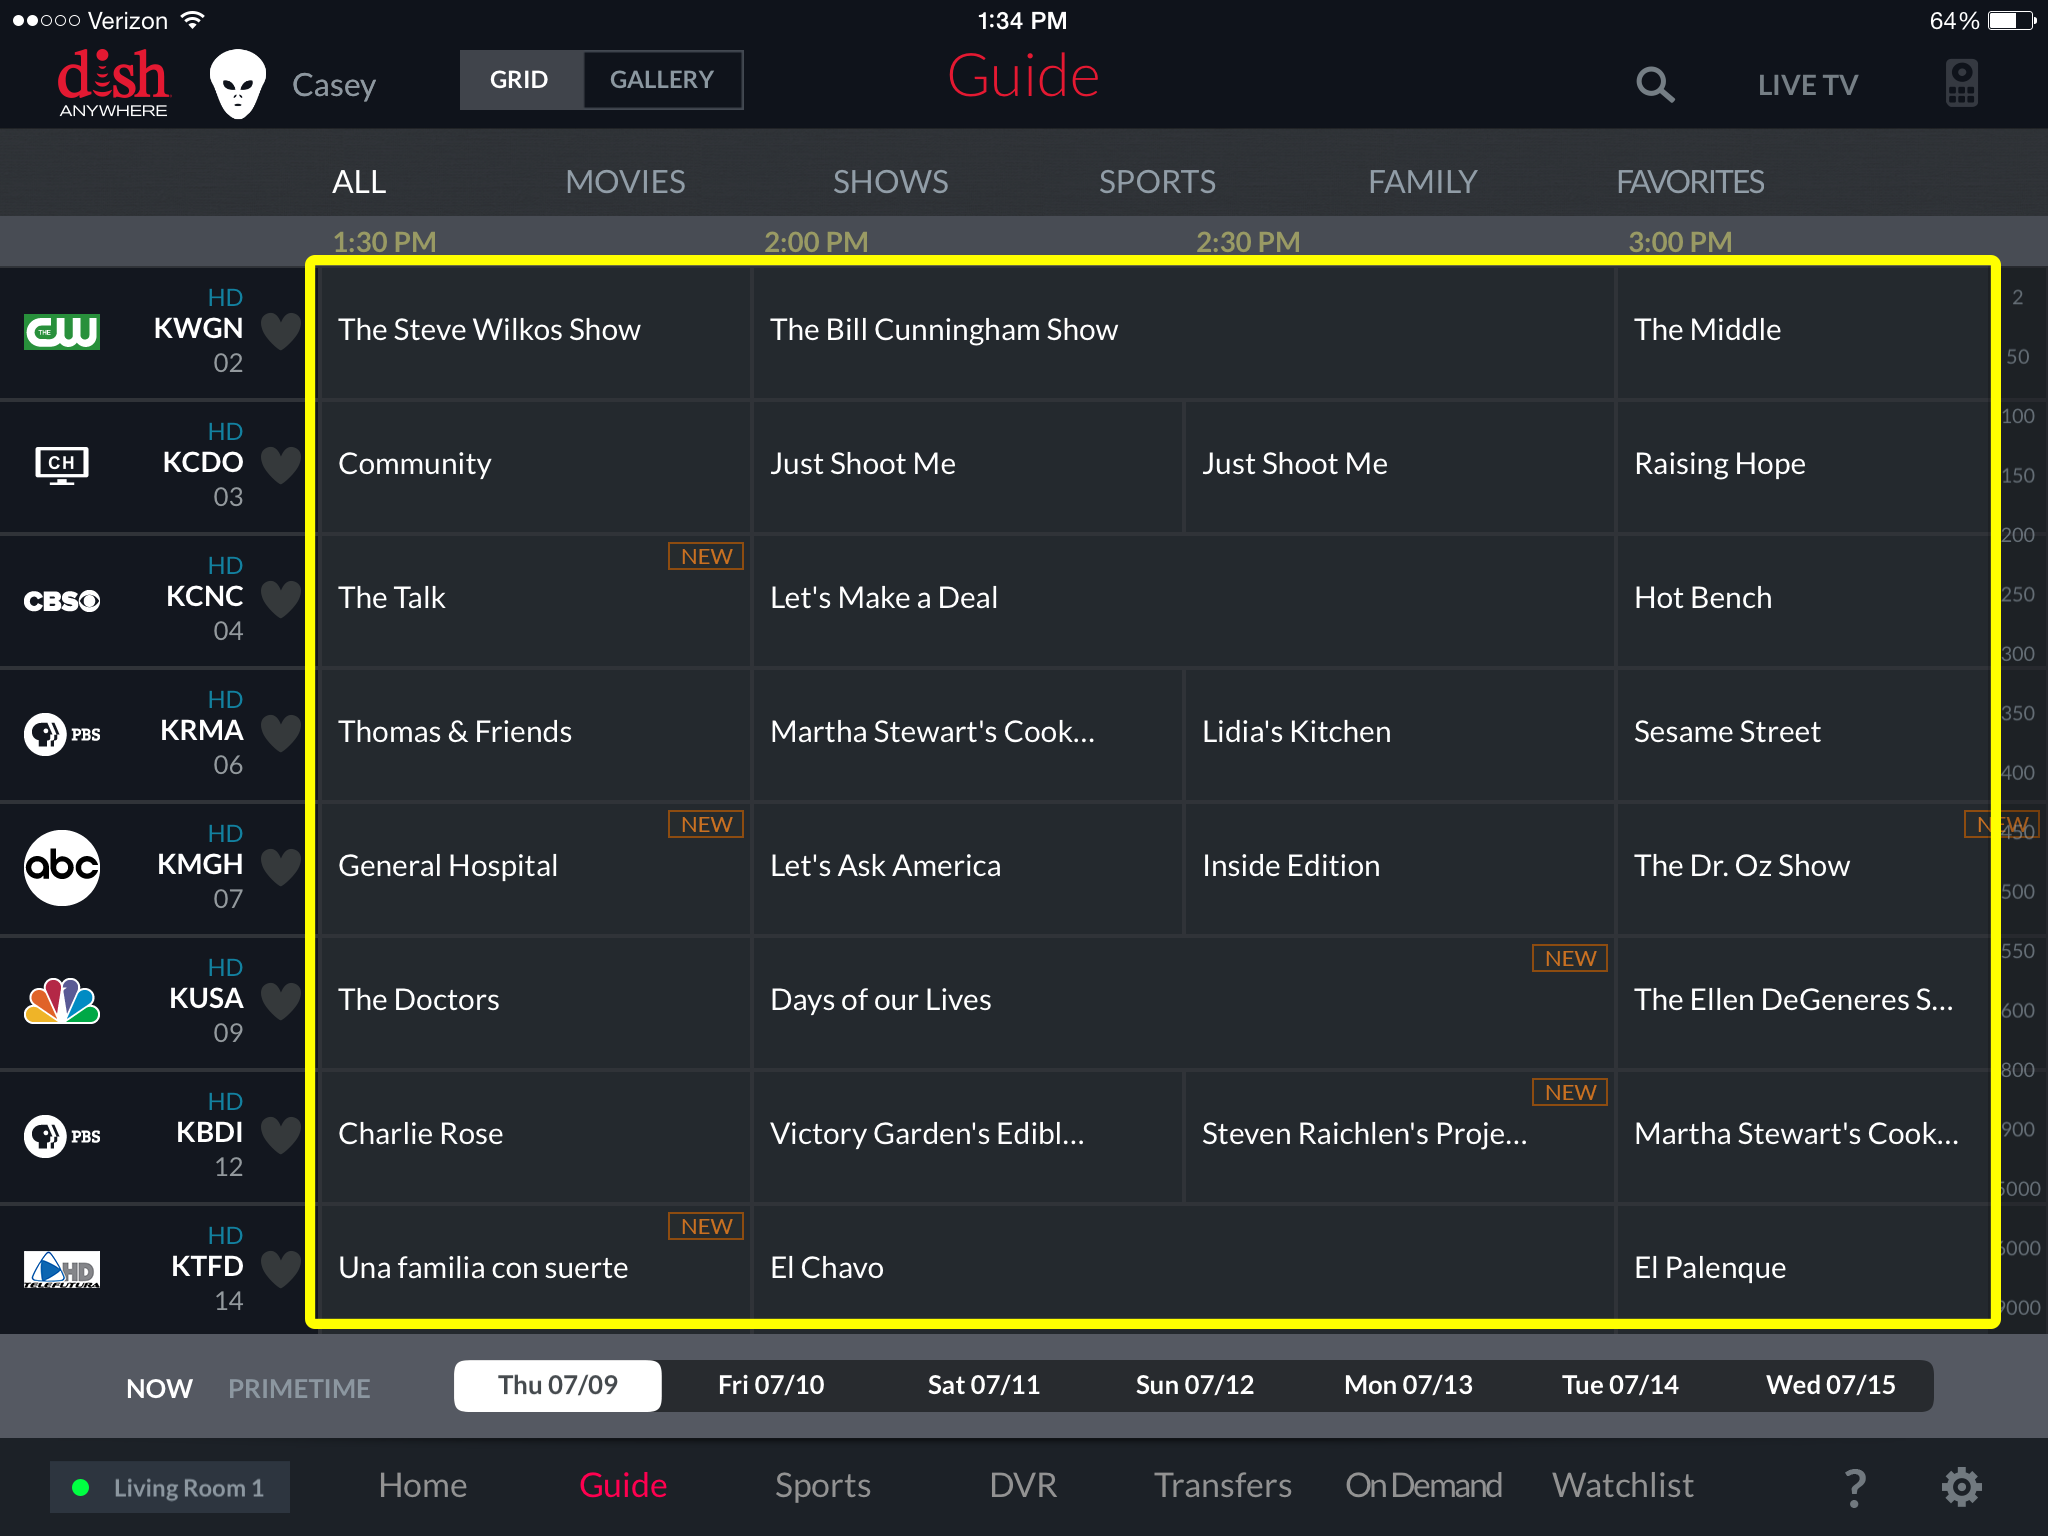 Channel guide in the DISH Anywhere tablet app